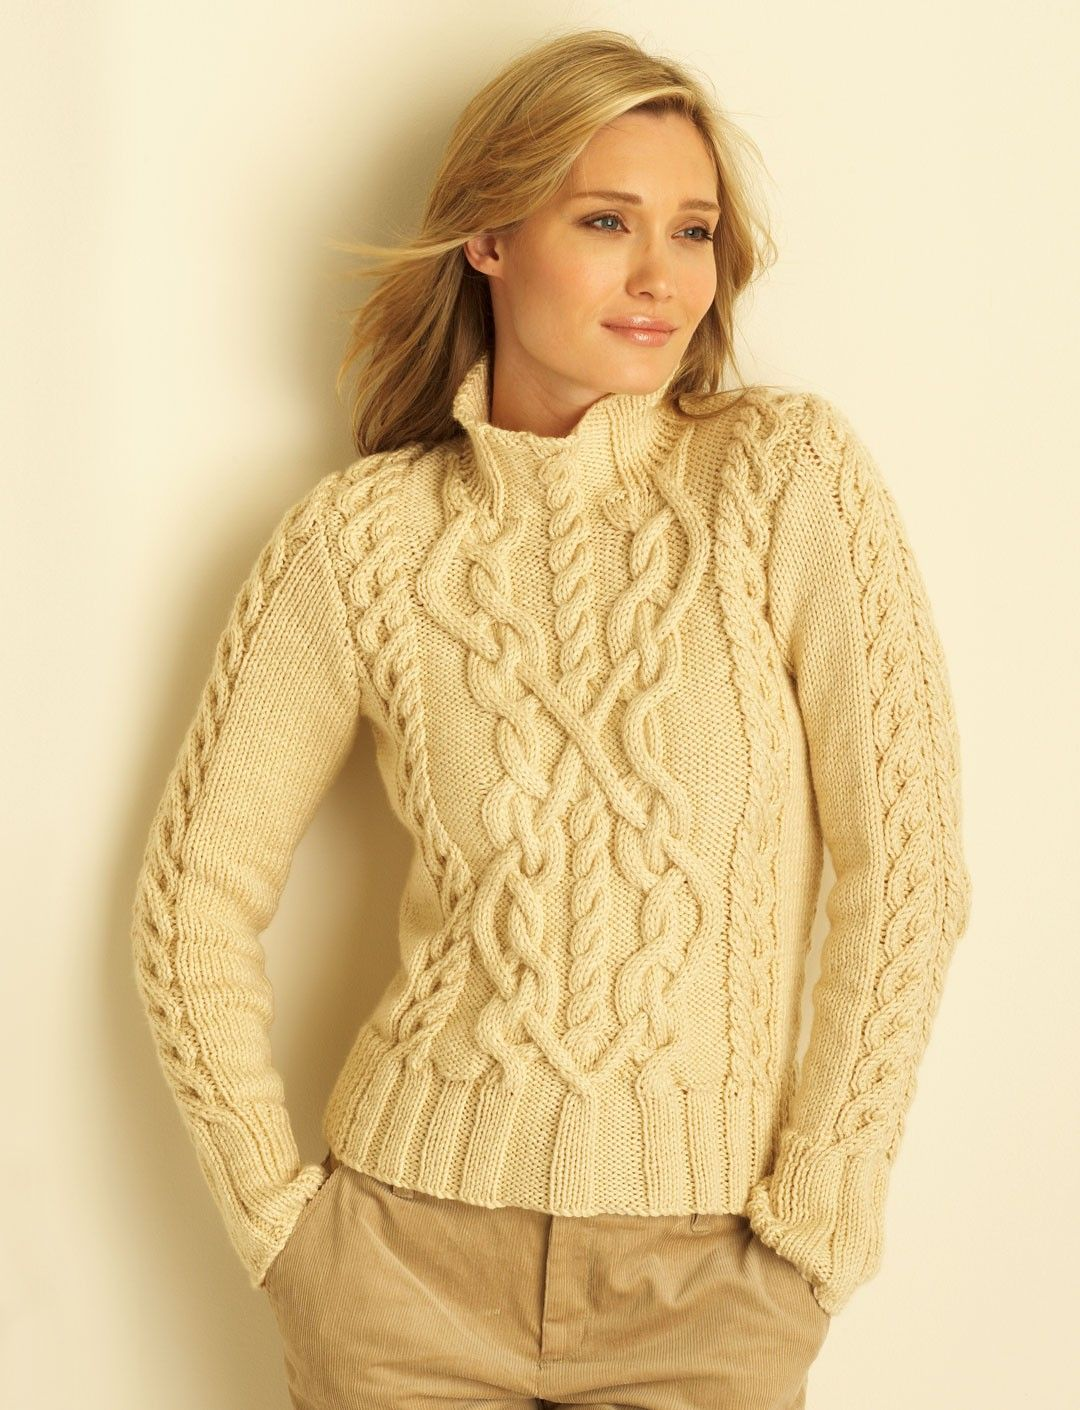 Yarnspirations Bernat Cable Sweater Patterns